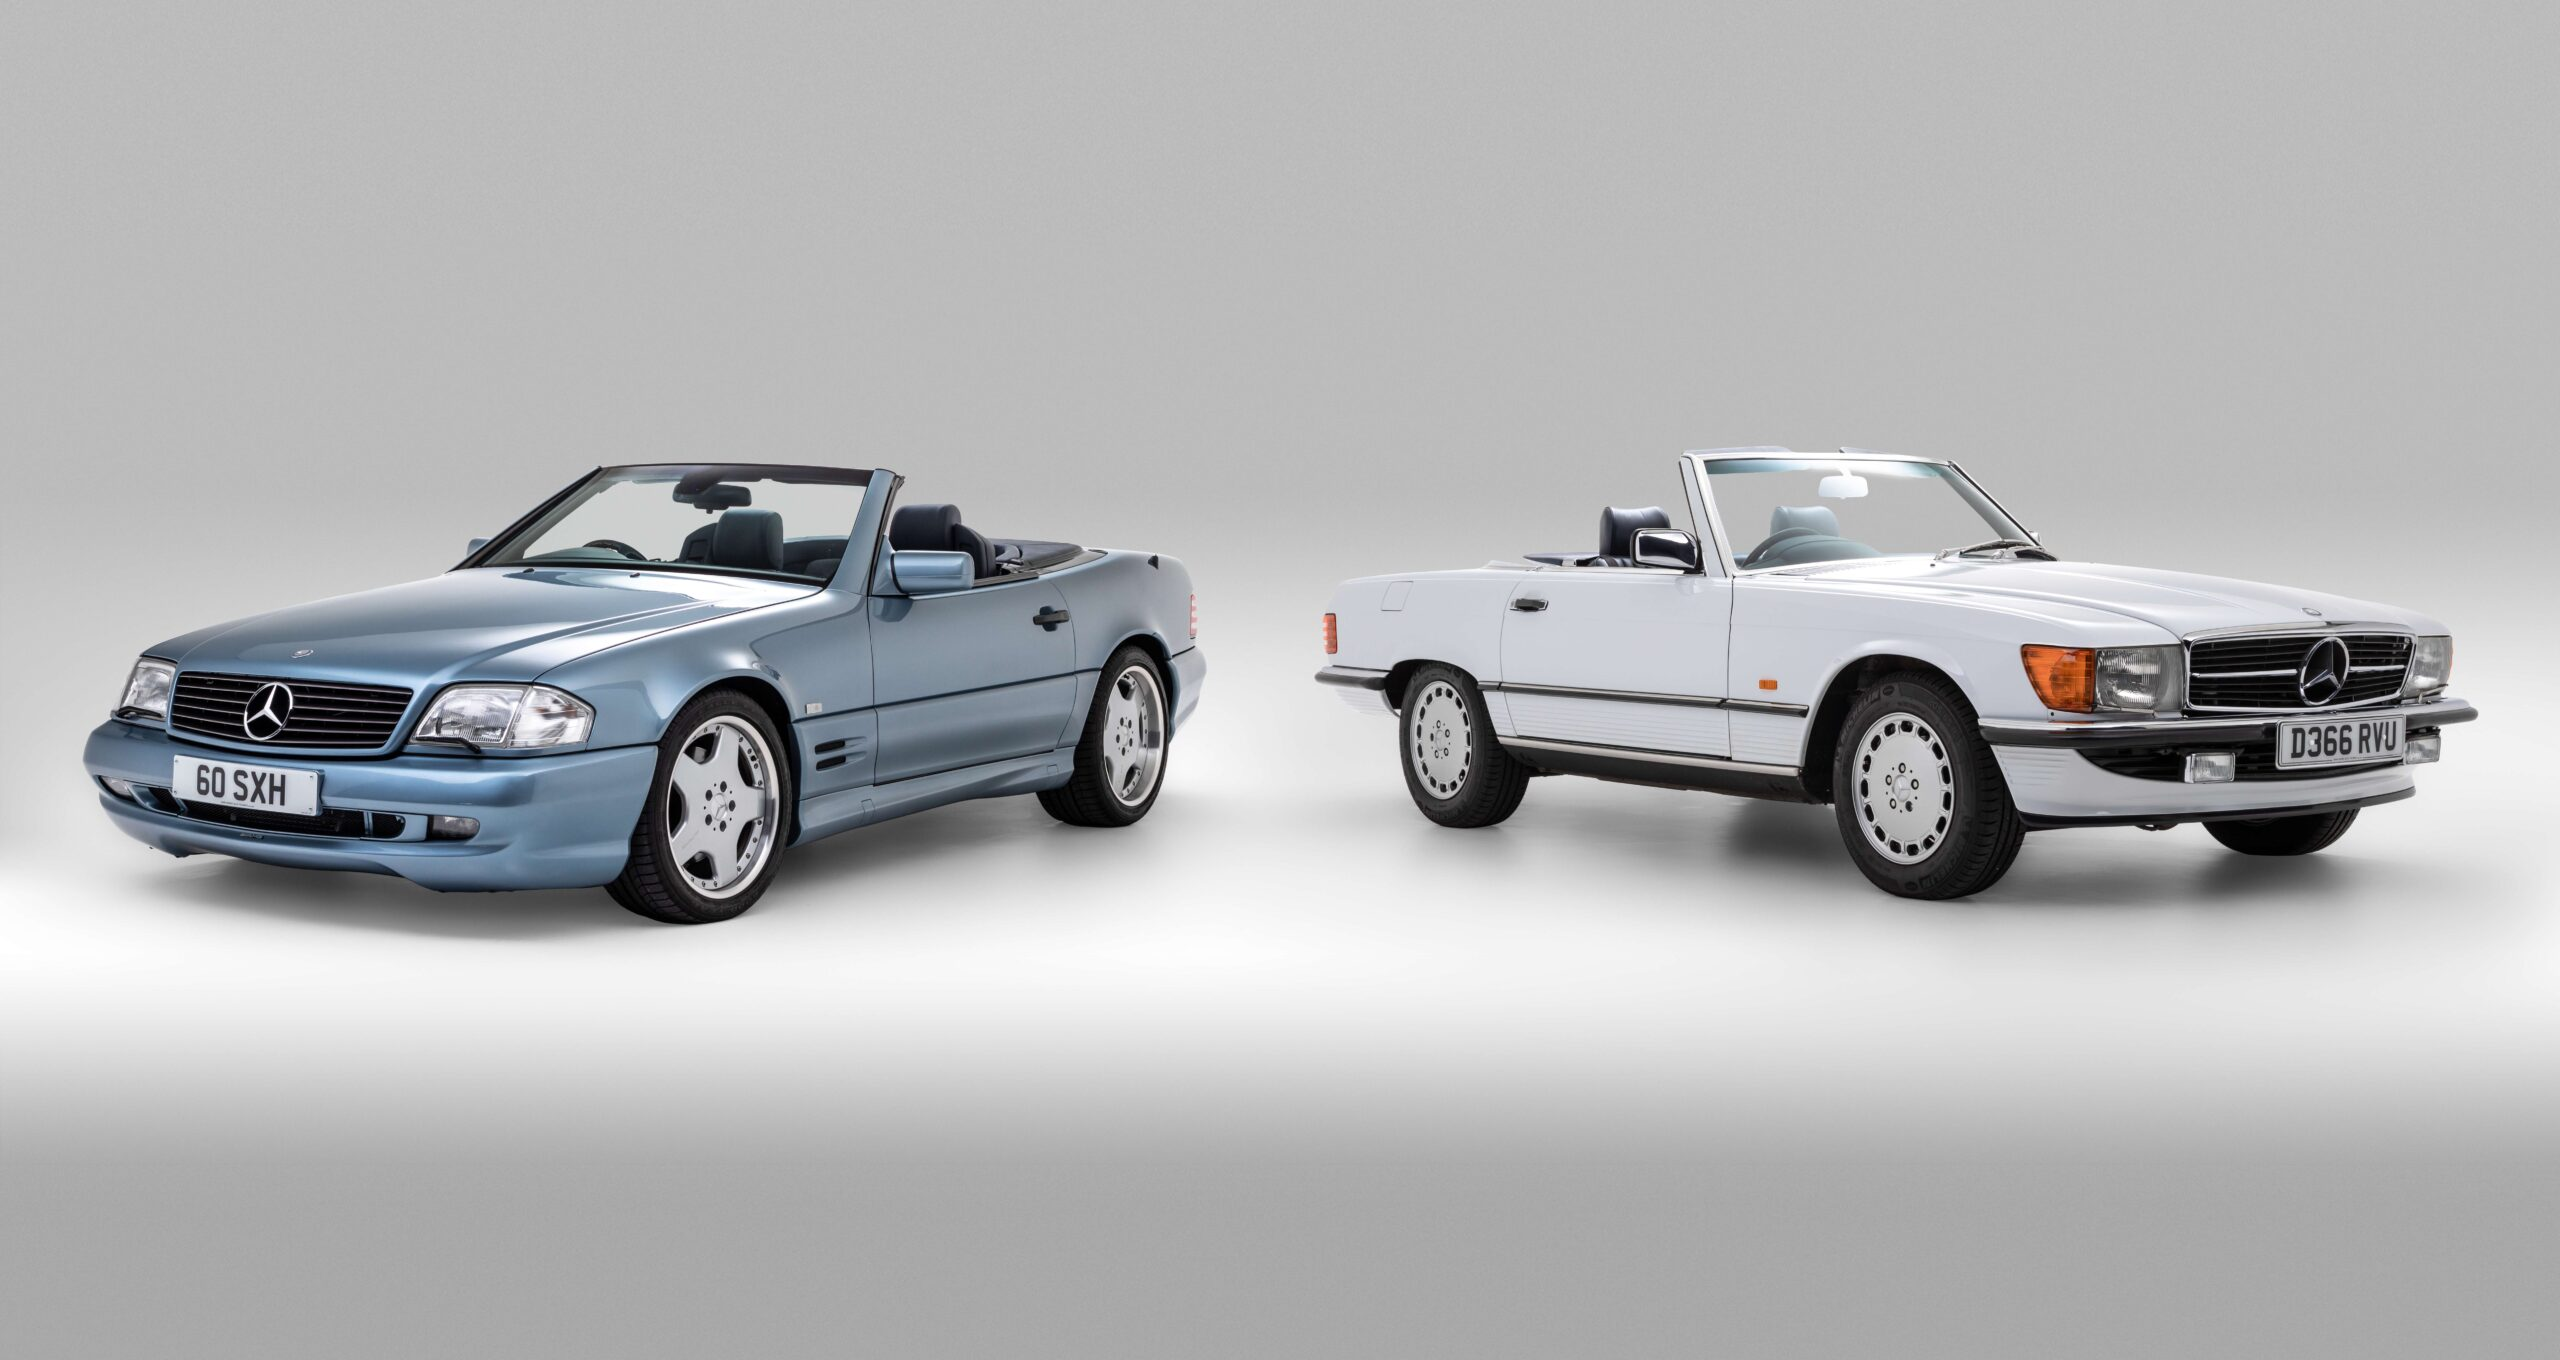 Mercedes-Benz SL60 and SL420